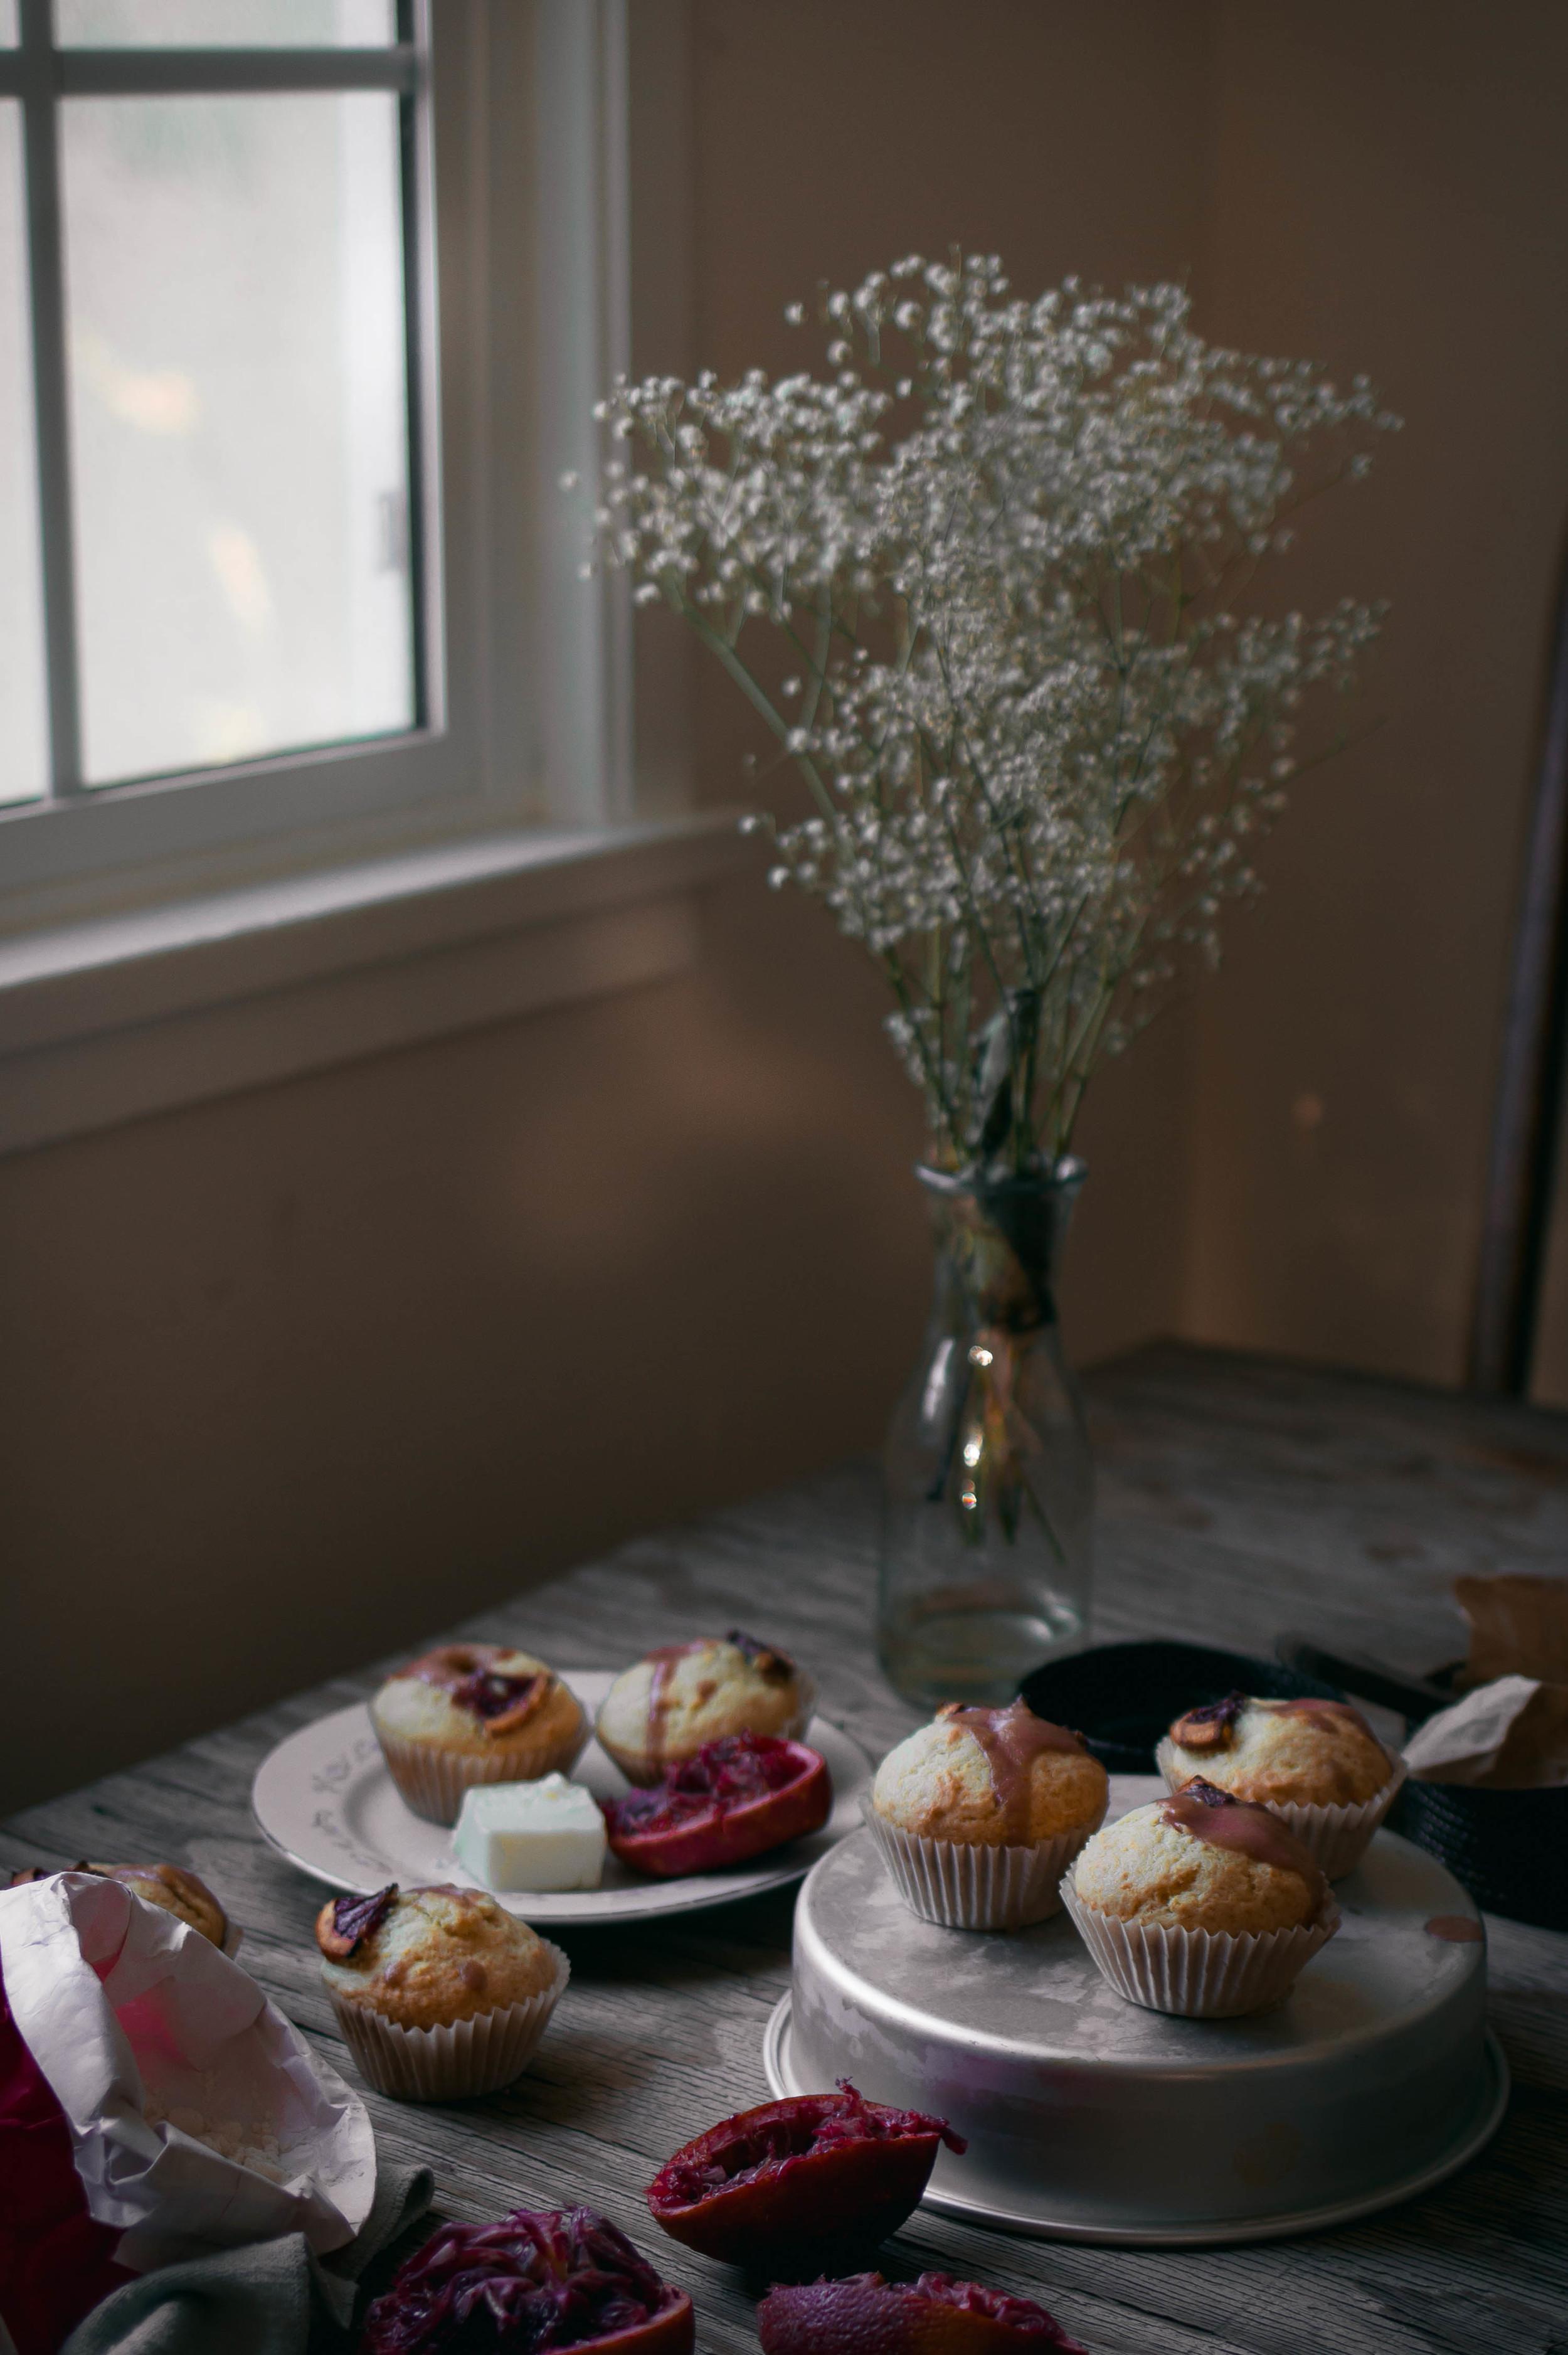 Citrus muffins and a blood orange curd recipe #kafrecipes | by fit for the soul